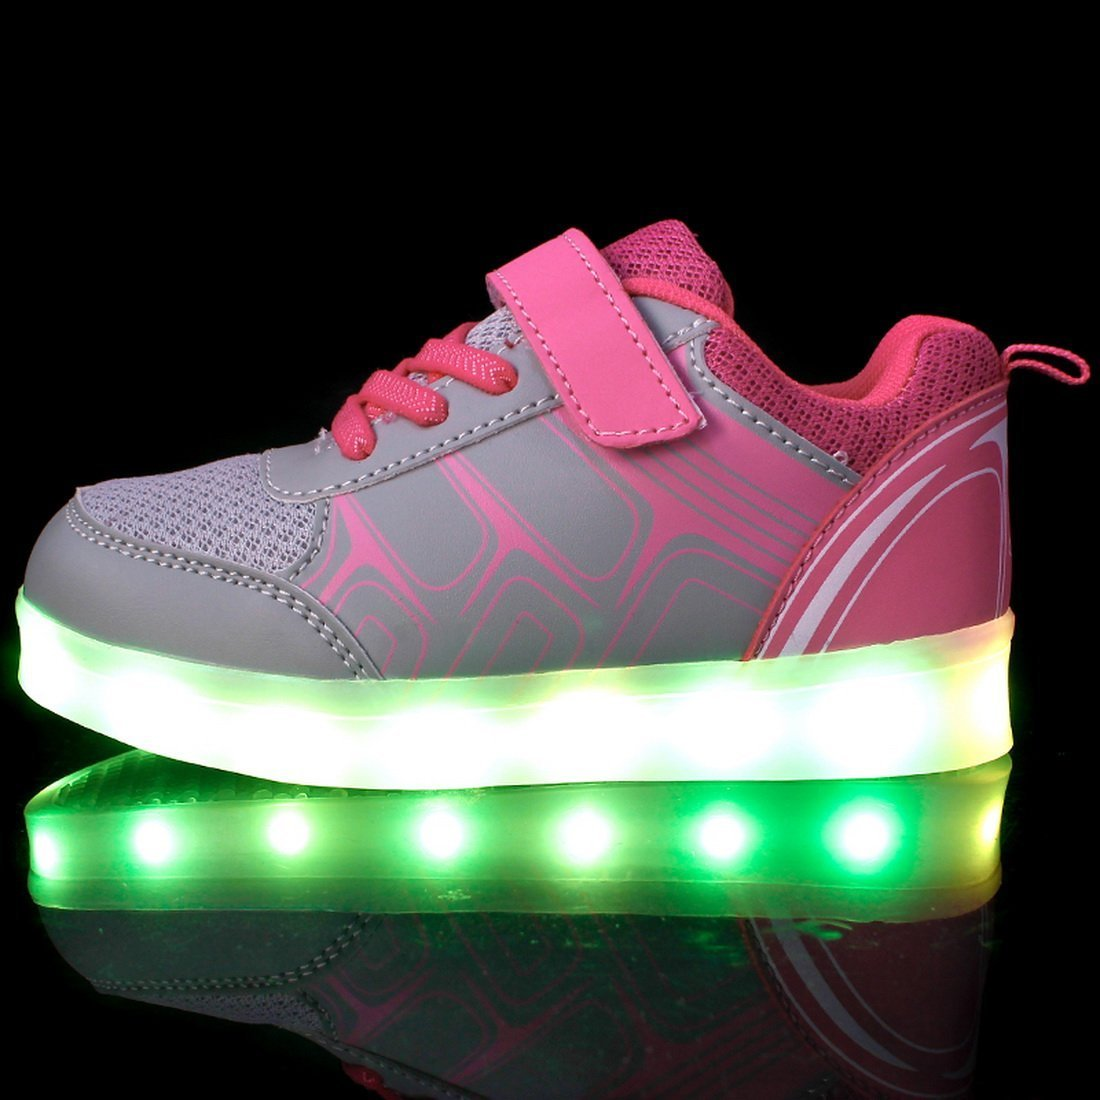 Man's/Woman's sexphd Kids Boys Girls USB Charger LED Lights Sports Light up Flames Sports Lights Shoes Sneaker High quality and low overhead excellent wonderful NV24633 70fbd8